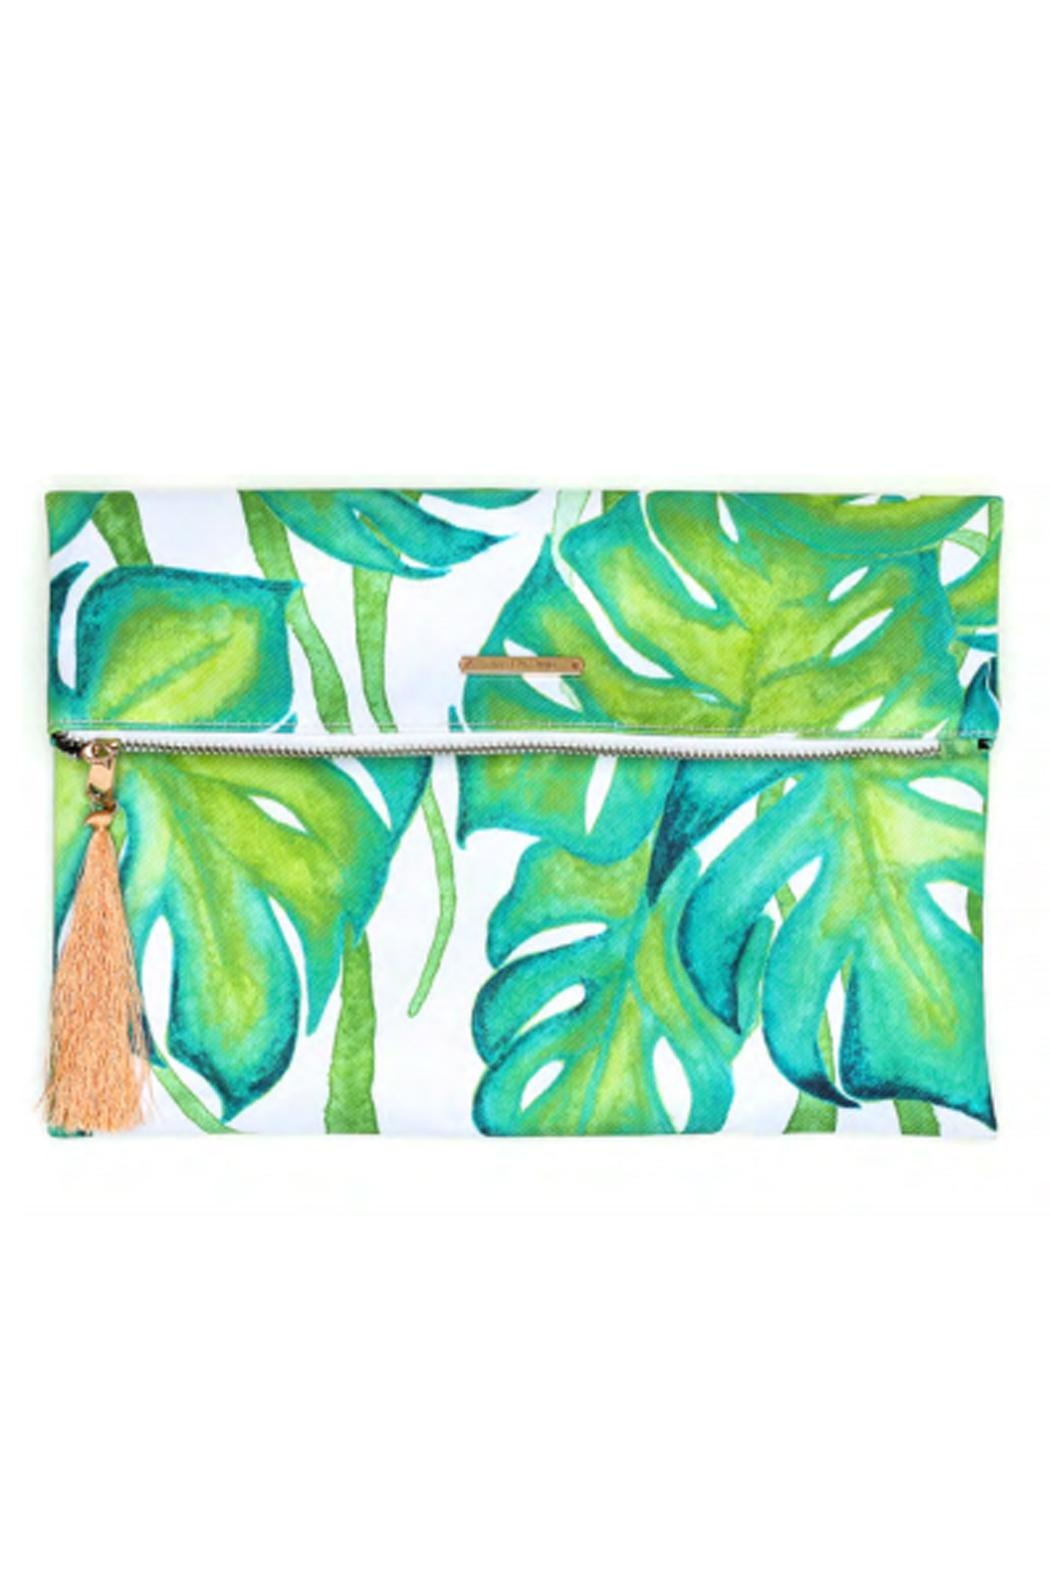 Statement Clutch - GREENS by VIDA VIDA bIIOt2